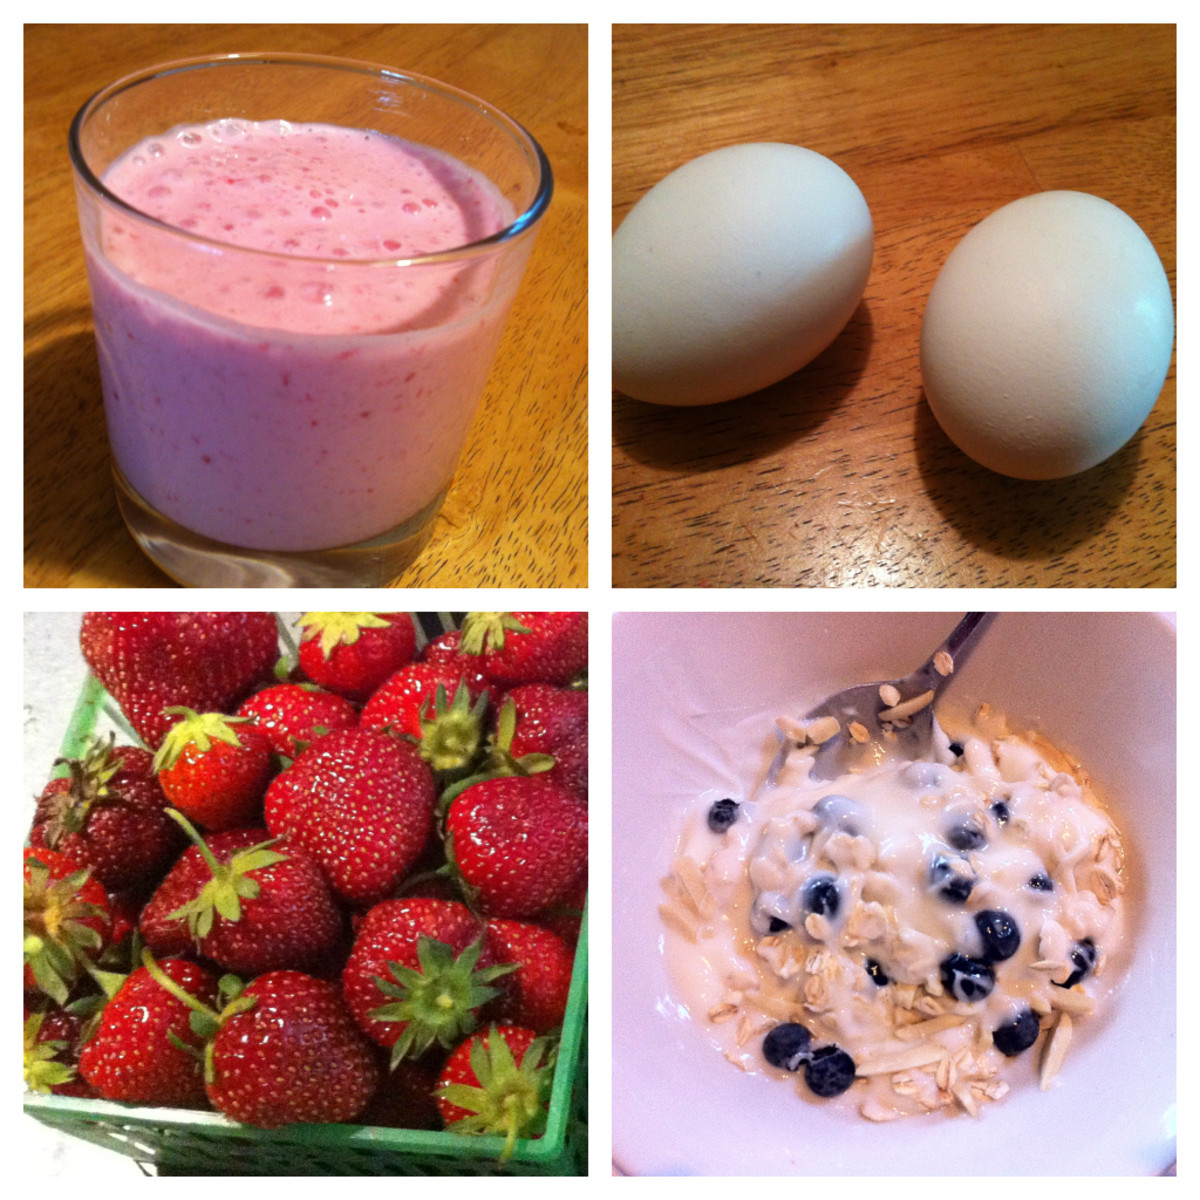 A healthy breakfast gets your day off to a great start!